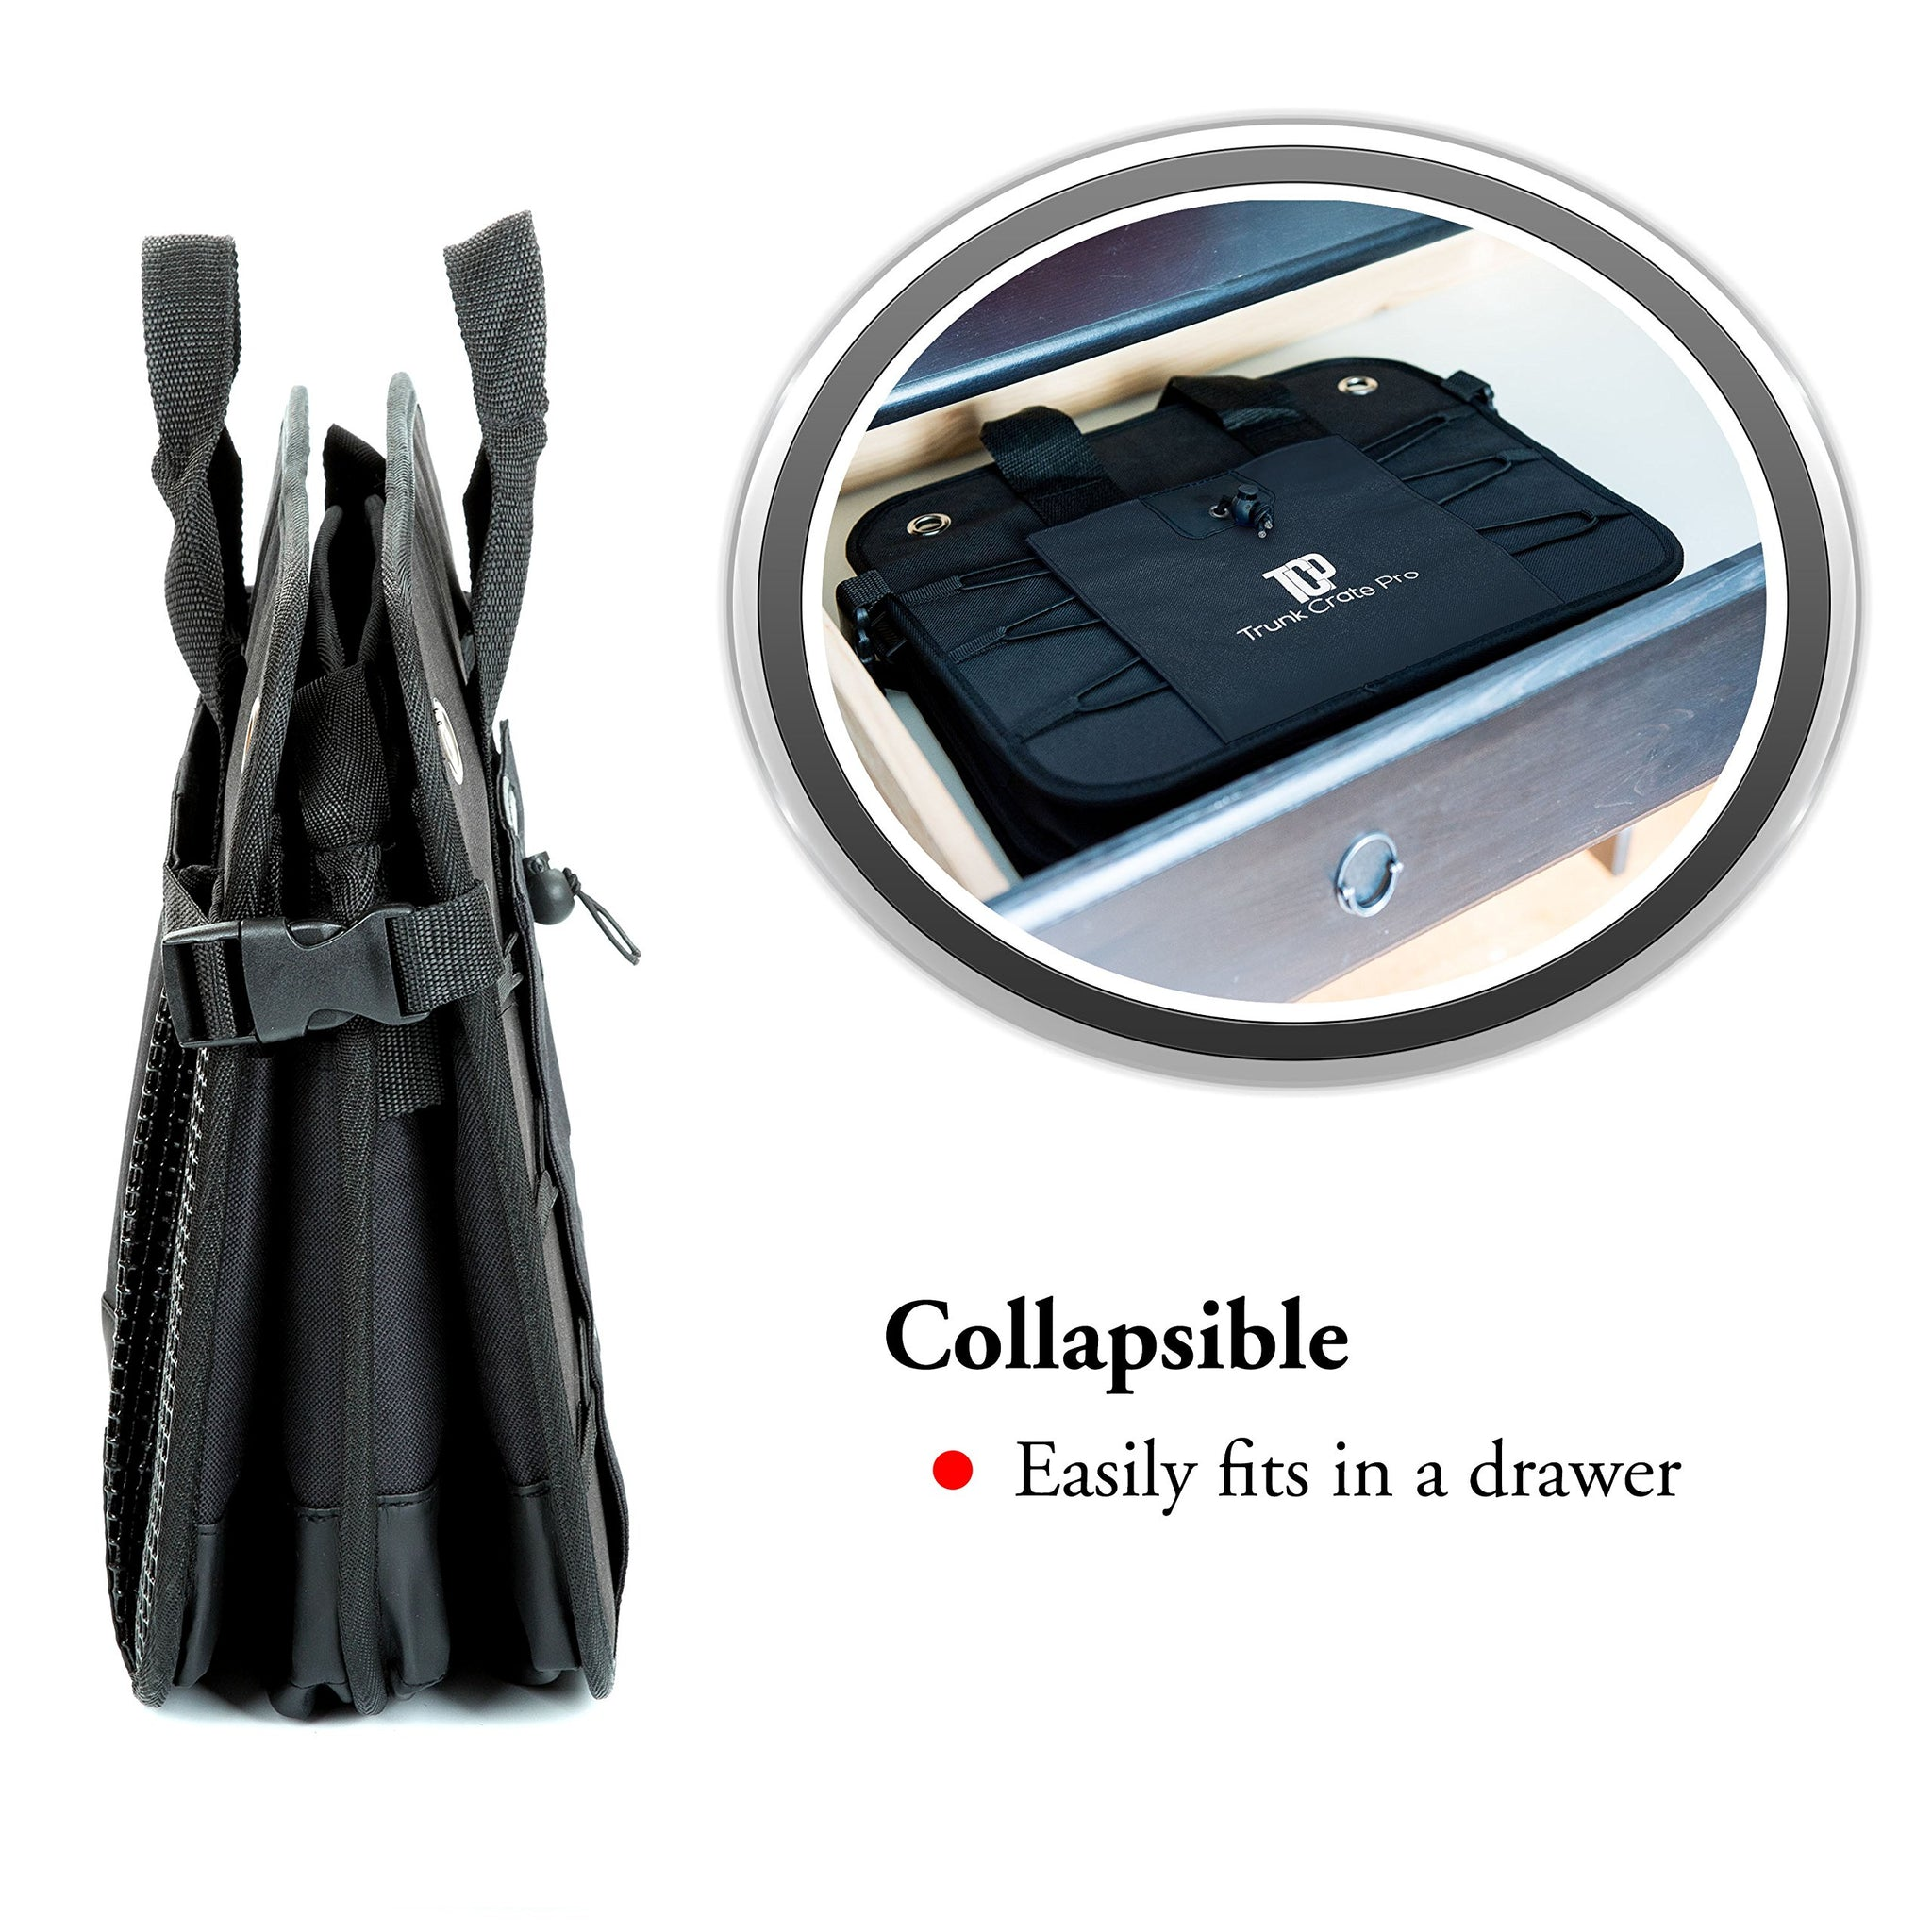 TrunkCratePro Collapsible Portable Multi Compartments Trunk Organizer Black